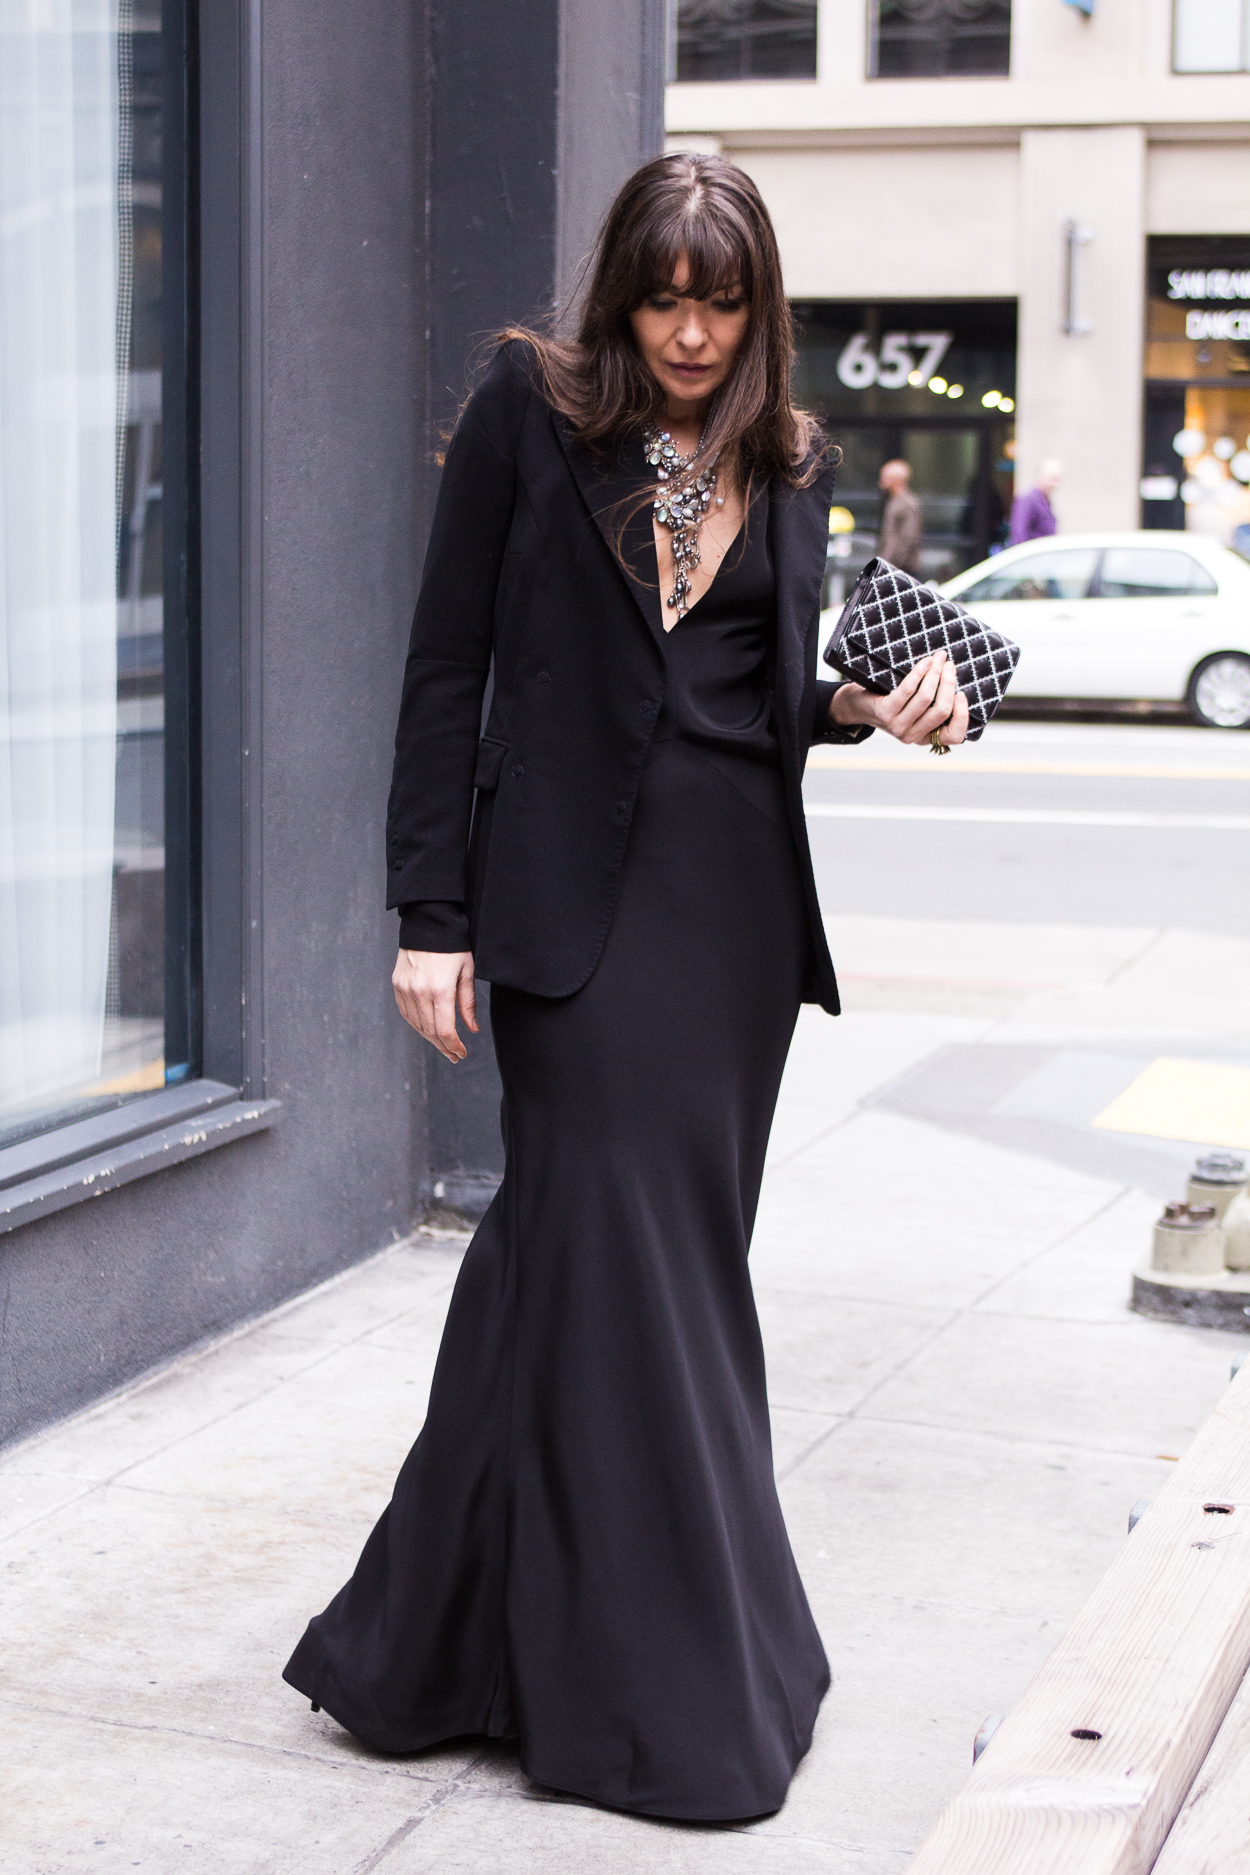 Black maxi dres for Valentine's Day.